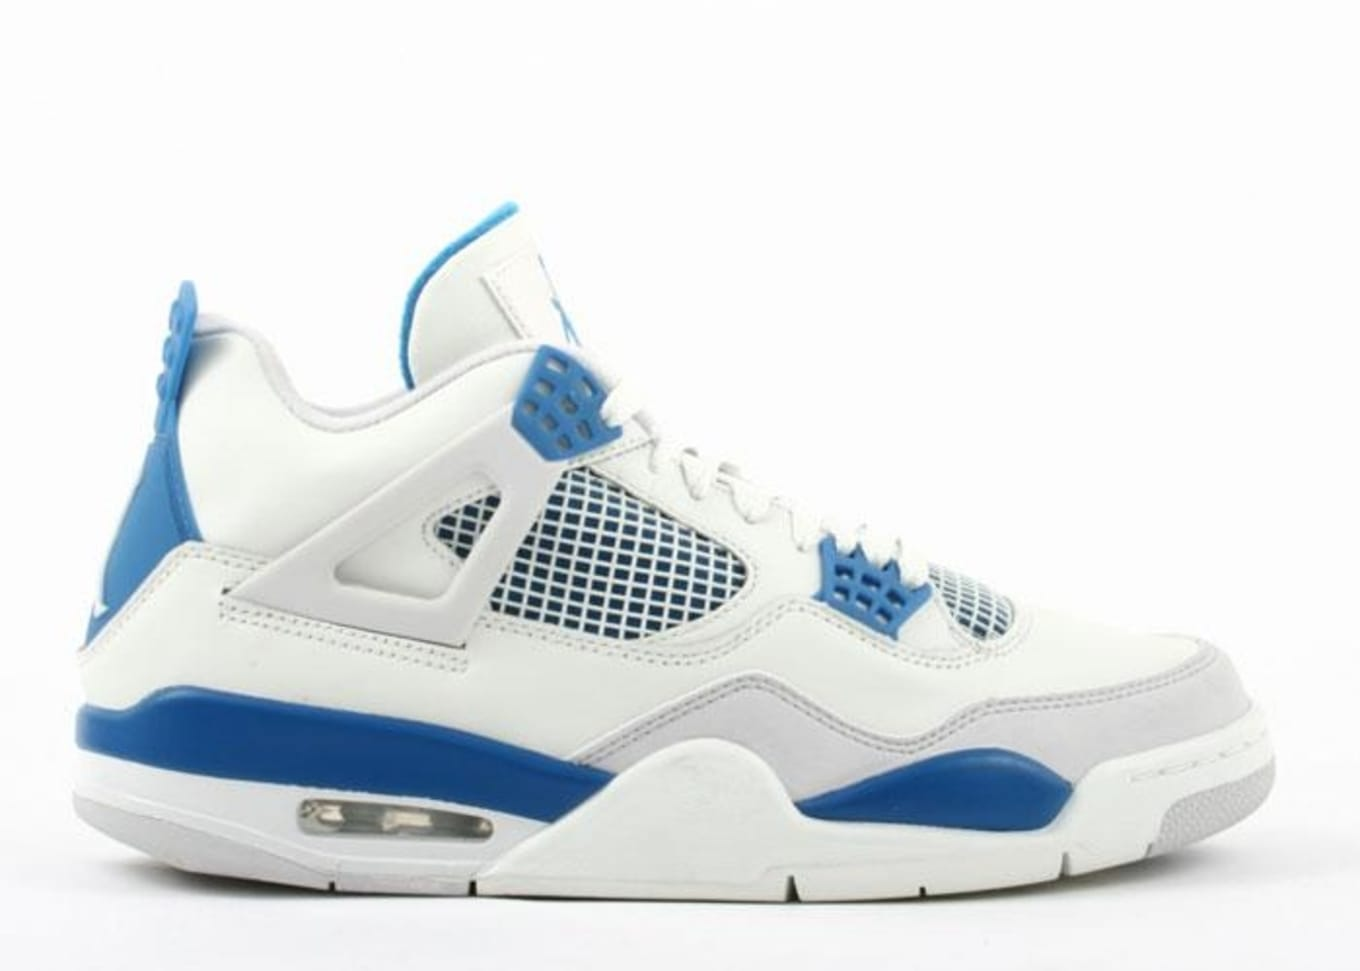 4bbb71fabe3bc5 Air Jordan 4 Retro